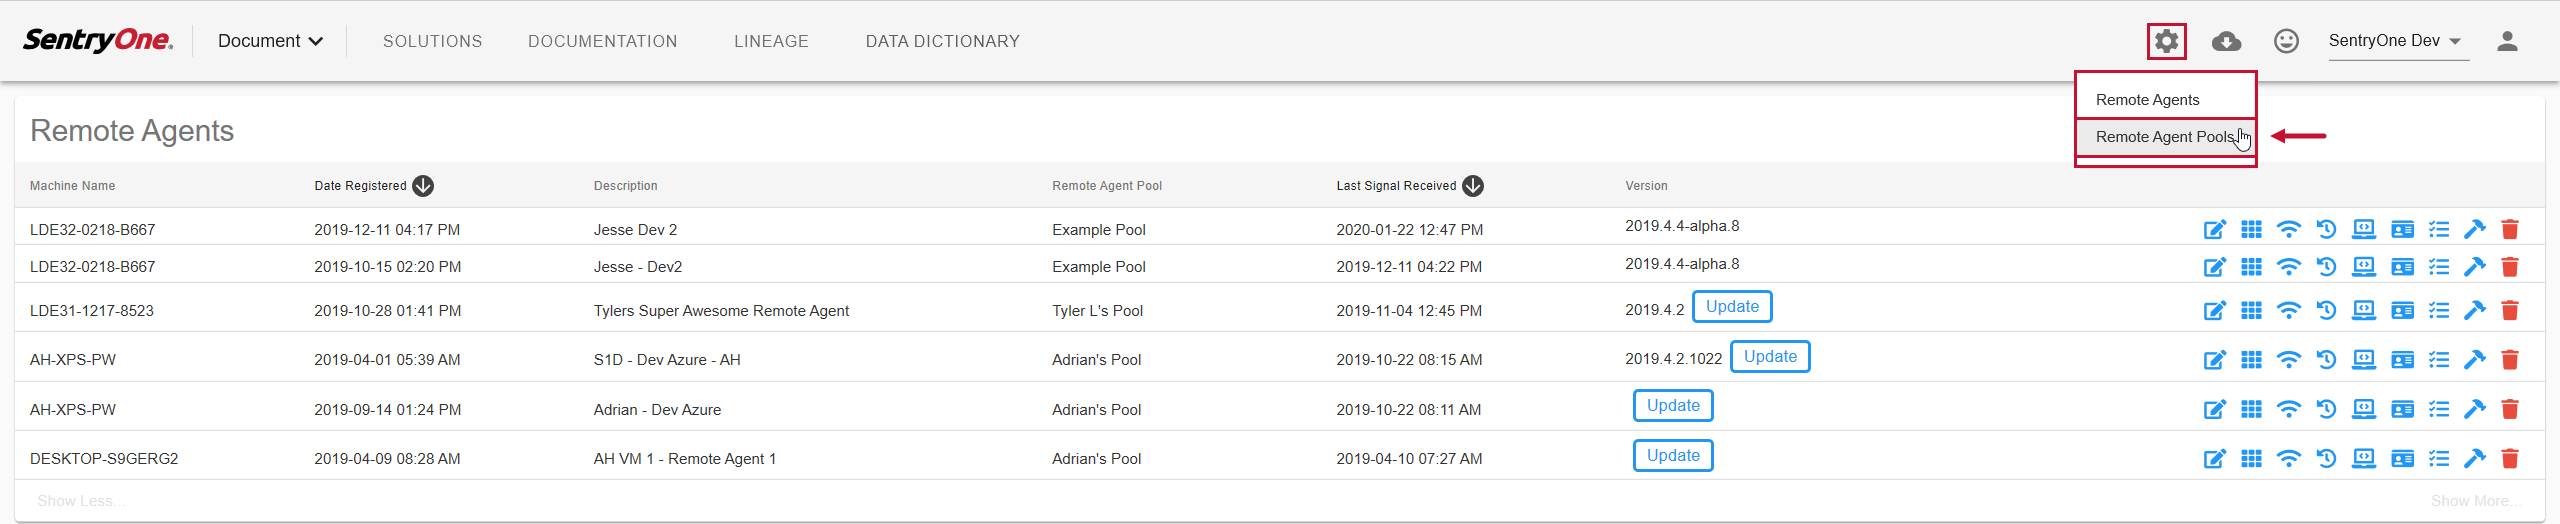 SentryOne Document Web Portal Manage > Remote Agent Pools